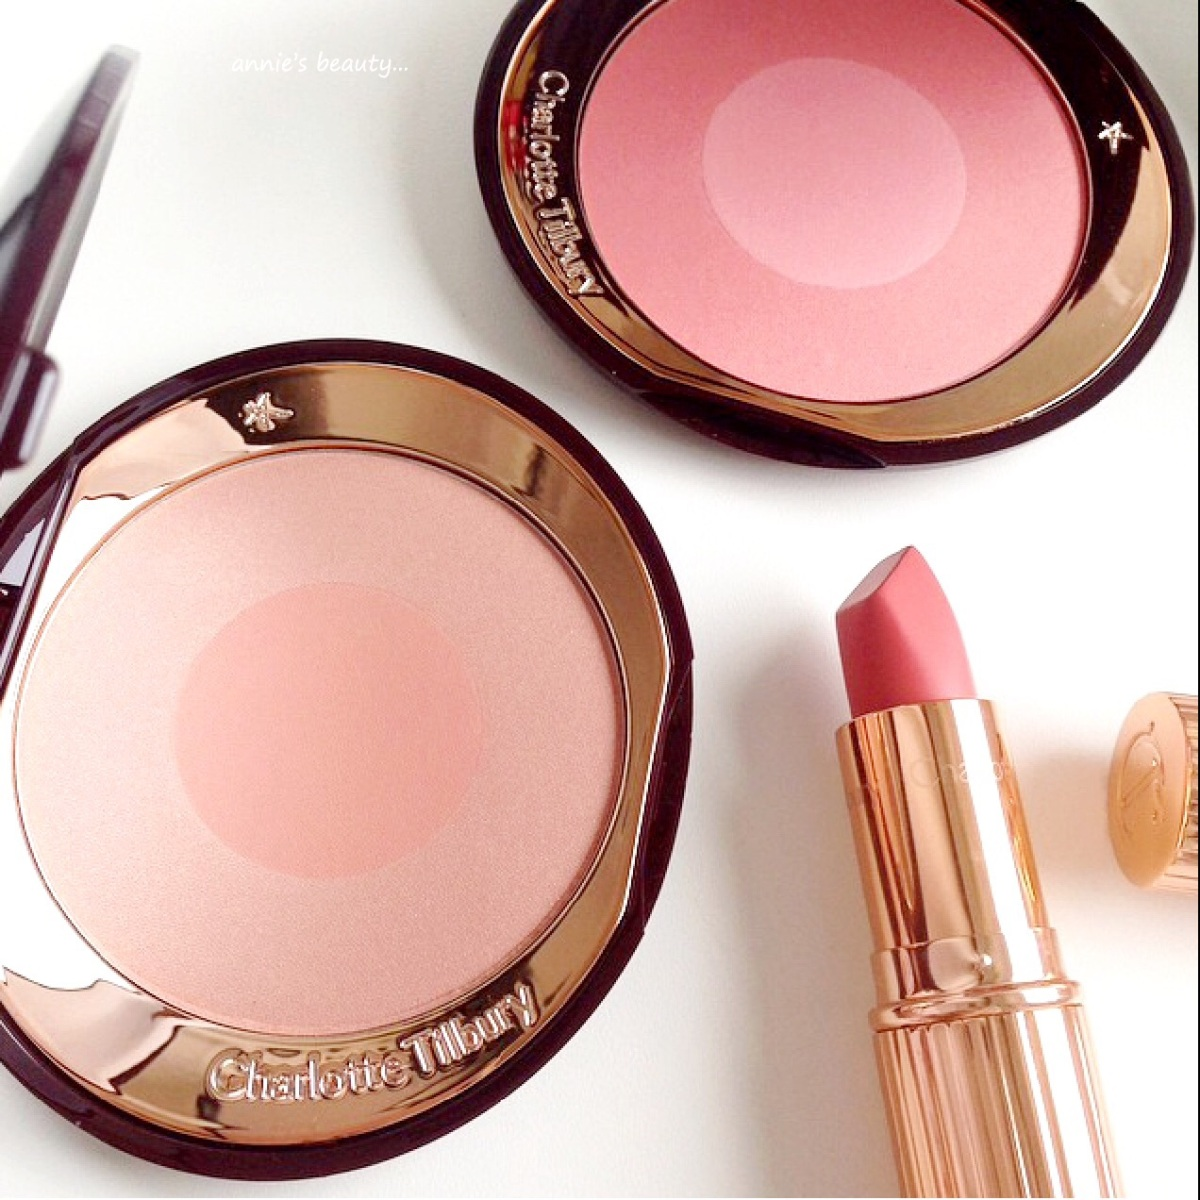 CHARLOTTE TILBURY Cheek to Chic Swish & Pop Blushers in FIRST LOVE and LOVE GLOW - review, swatches, comparisons...